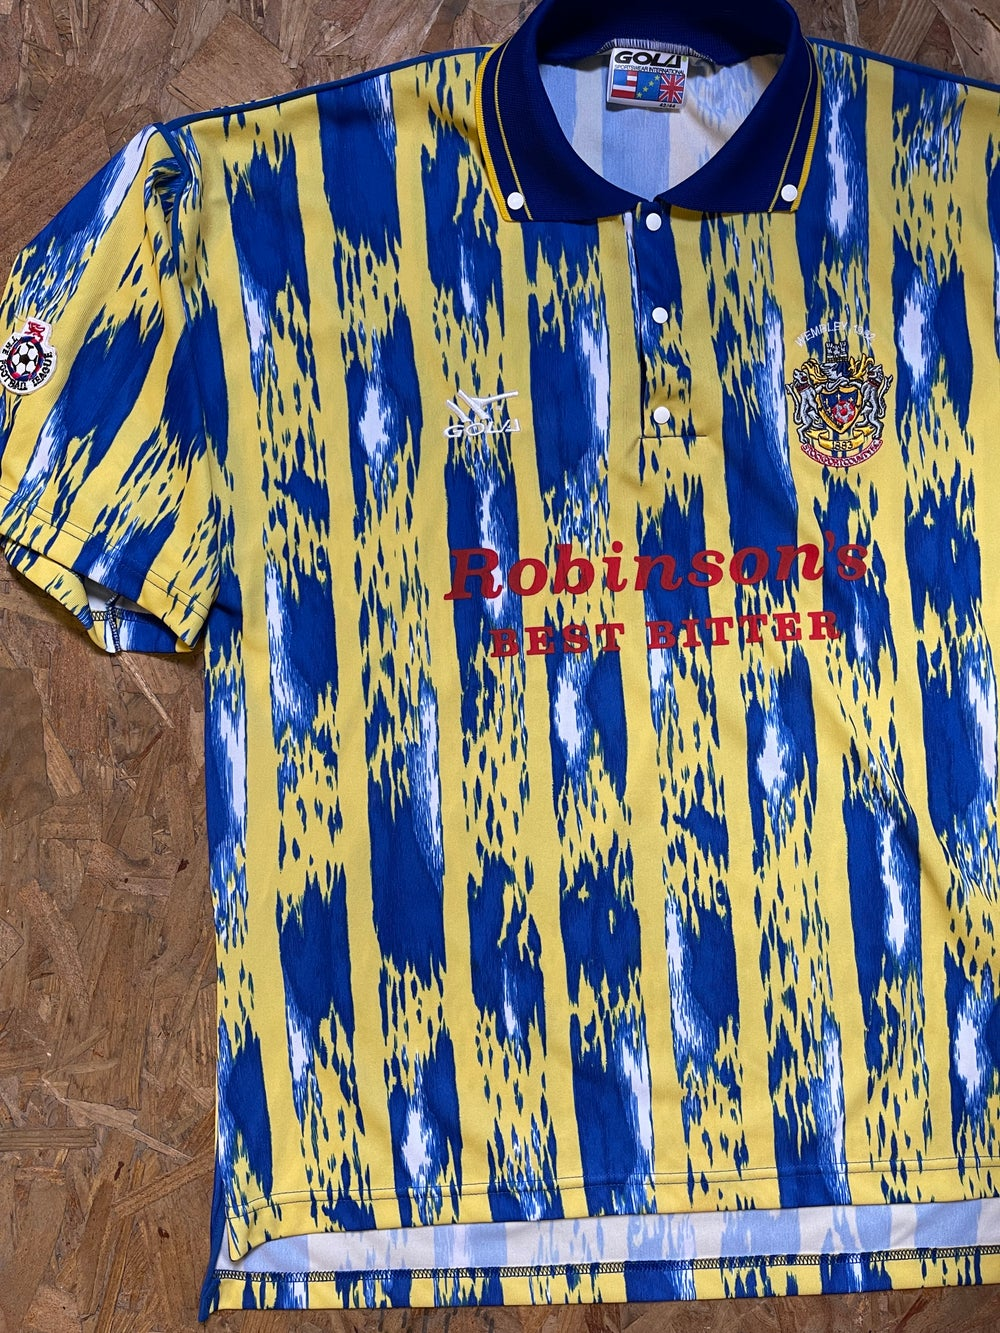 Player Issue 1992 Play Off Final Shirt